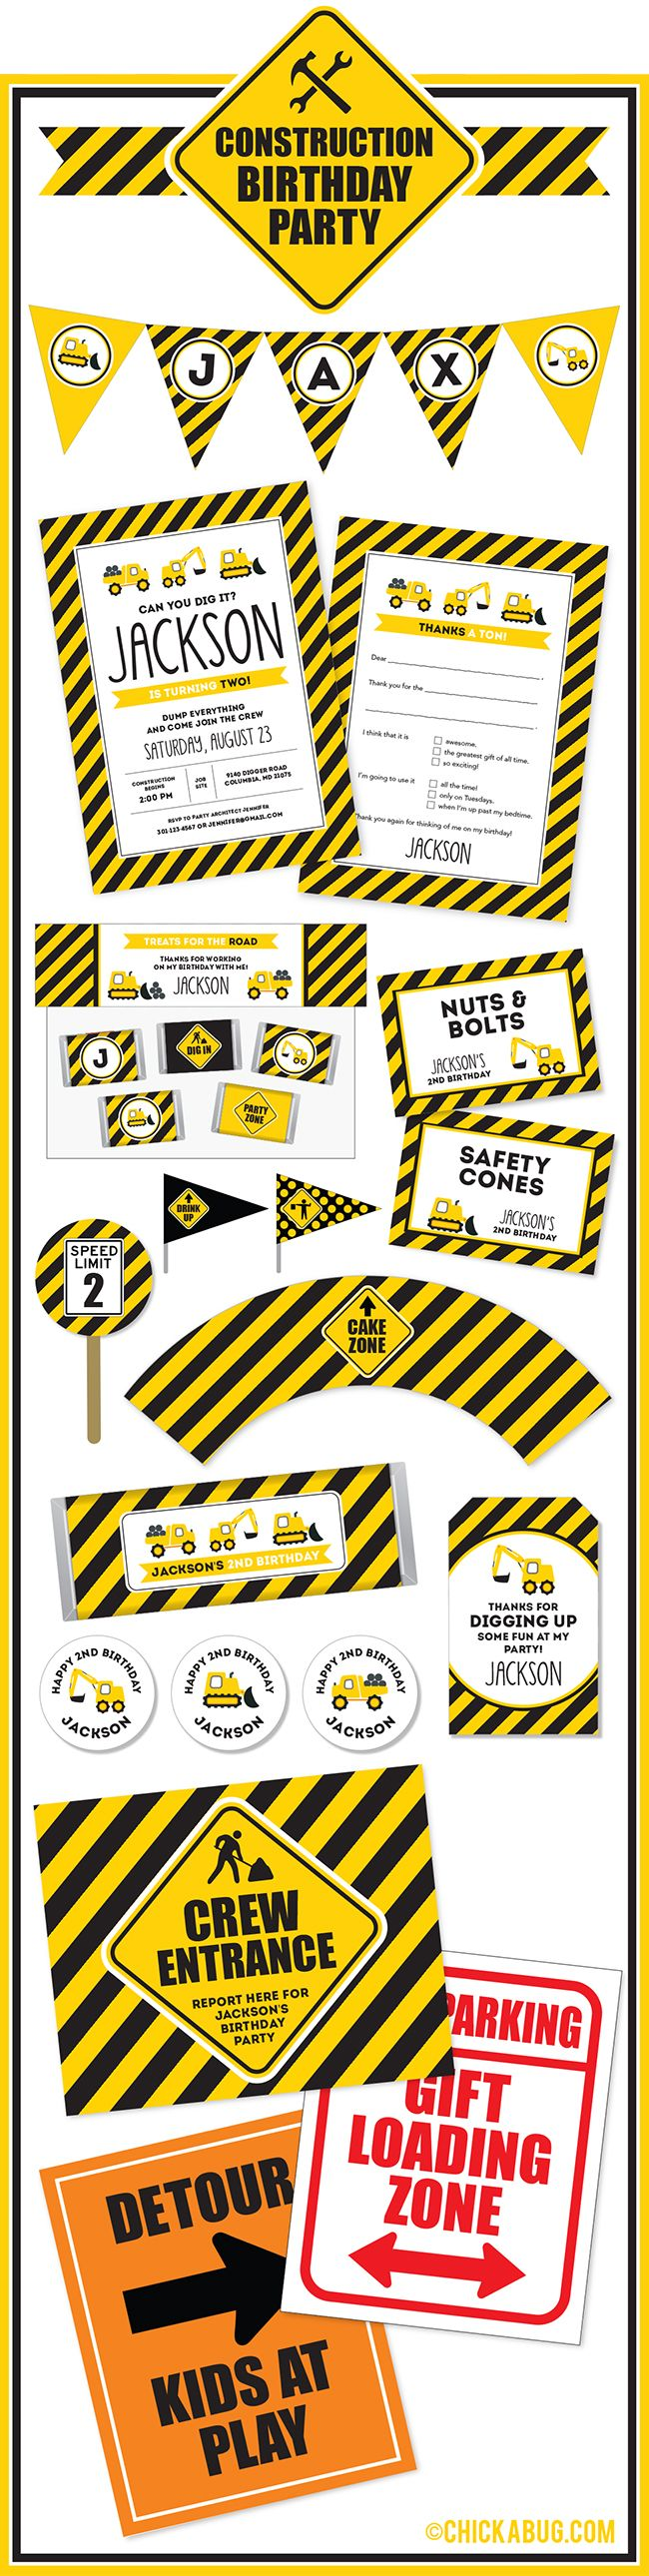 Construction theme birthday party invitations, water labels, stickers, and DIY party printables from Chickabug.com!